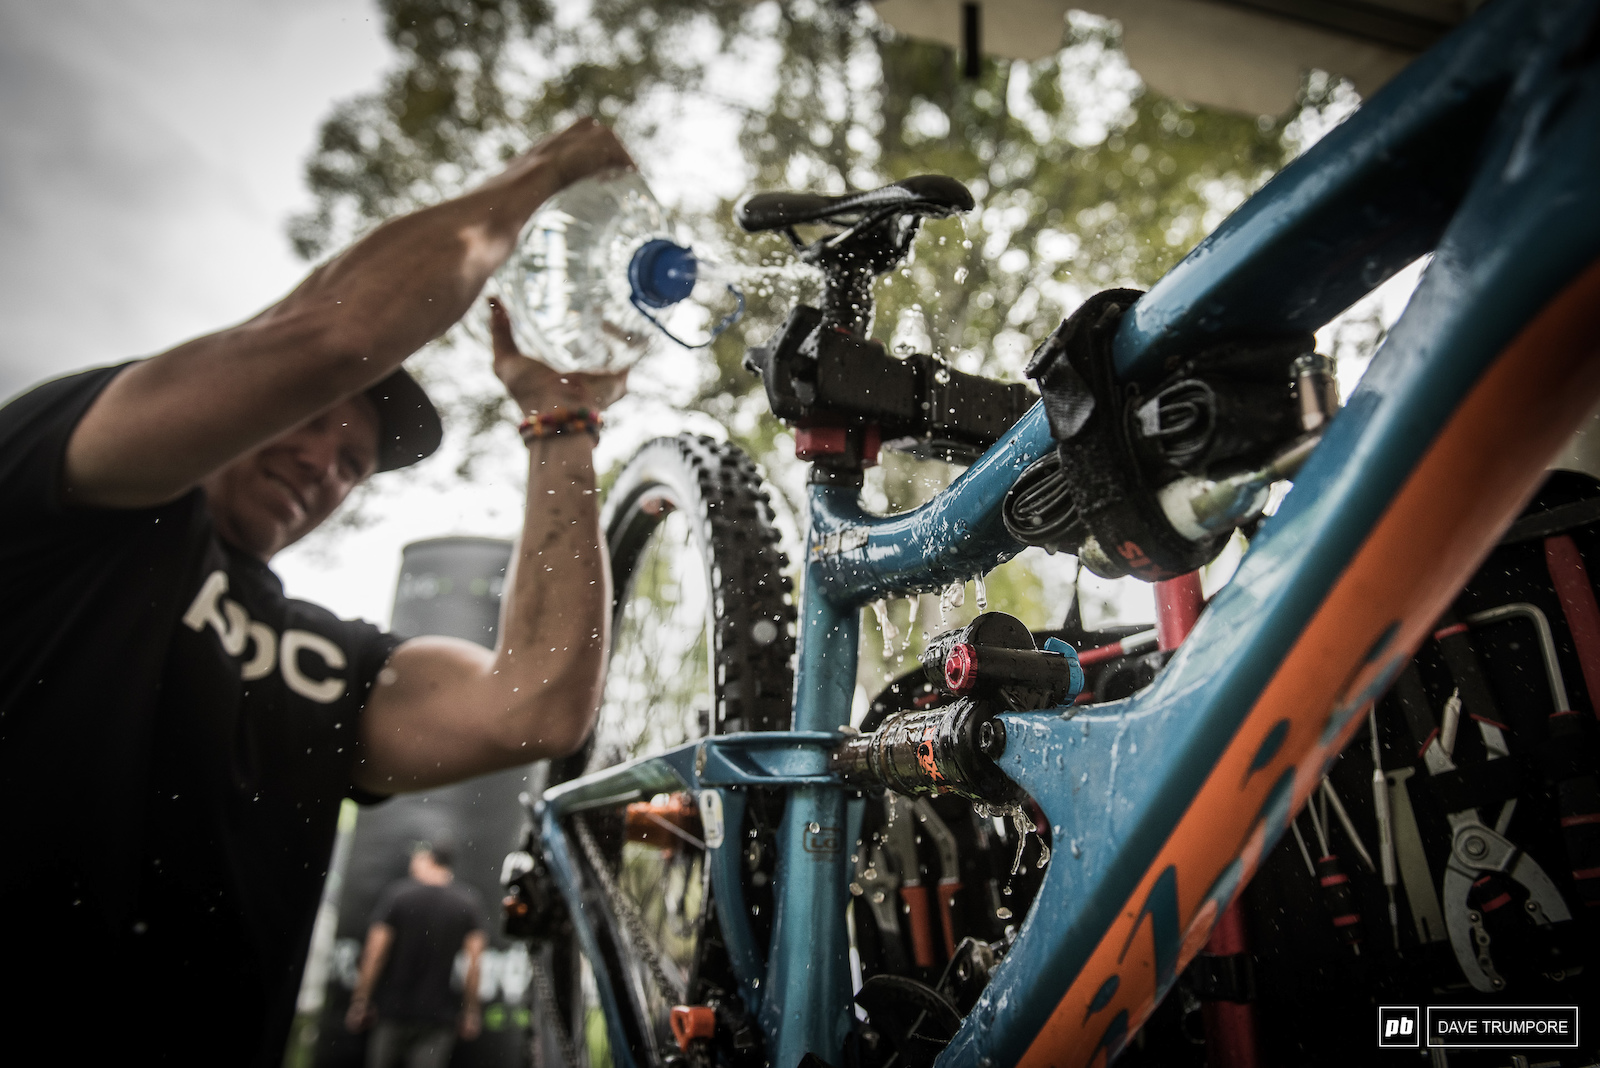 With a massive bike wash line and lack of hoses on the pits the mechanics had to improvise in order clean drivetrains during the racers one pit stop of the day.